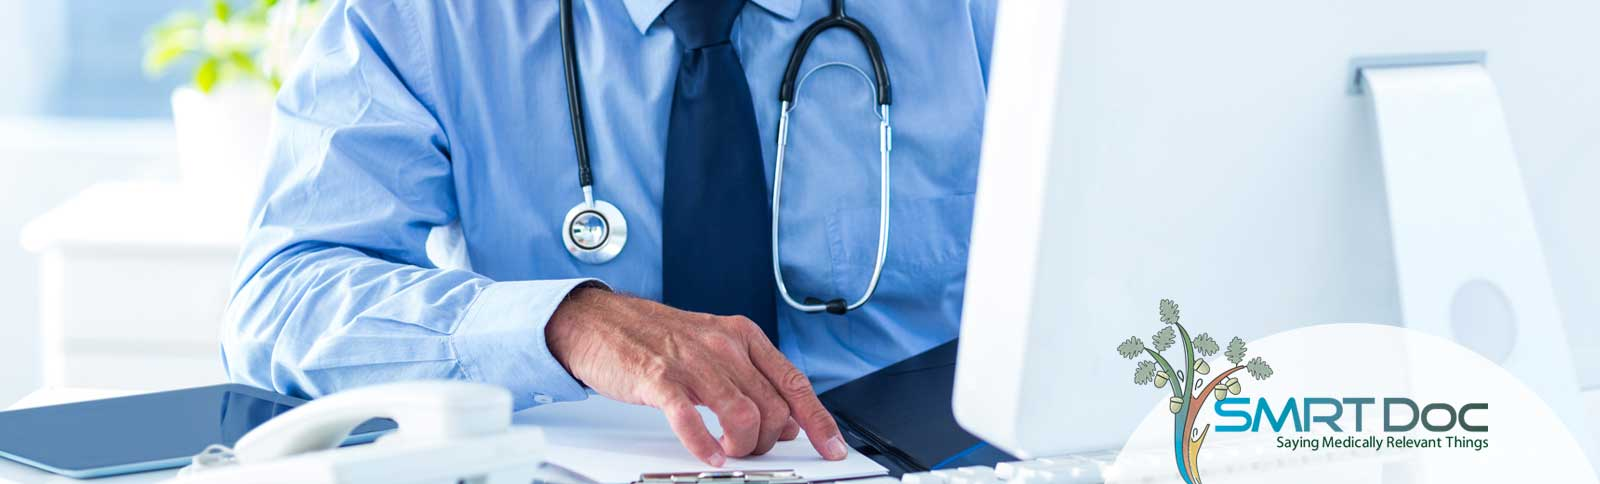 Smrt doc medical record chart review and roi